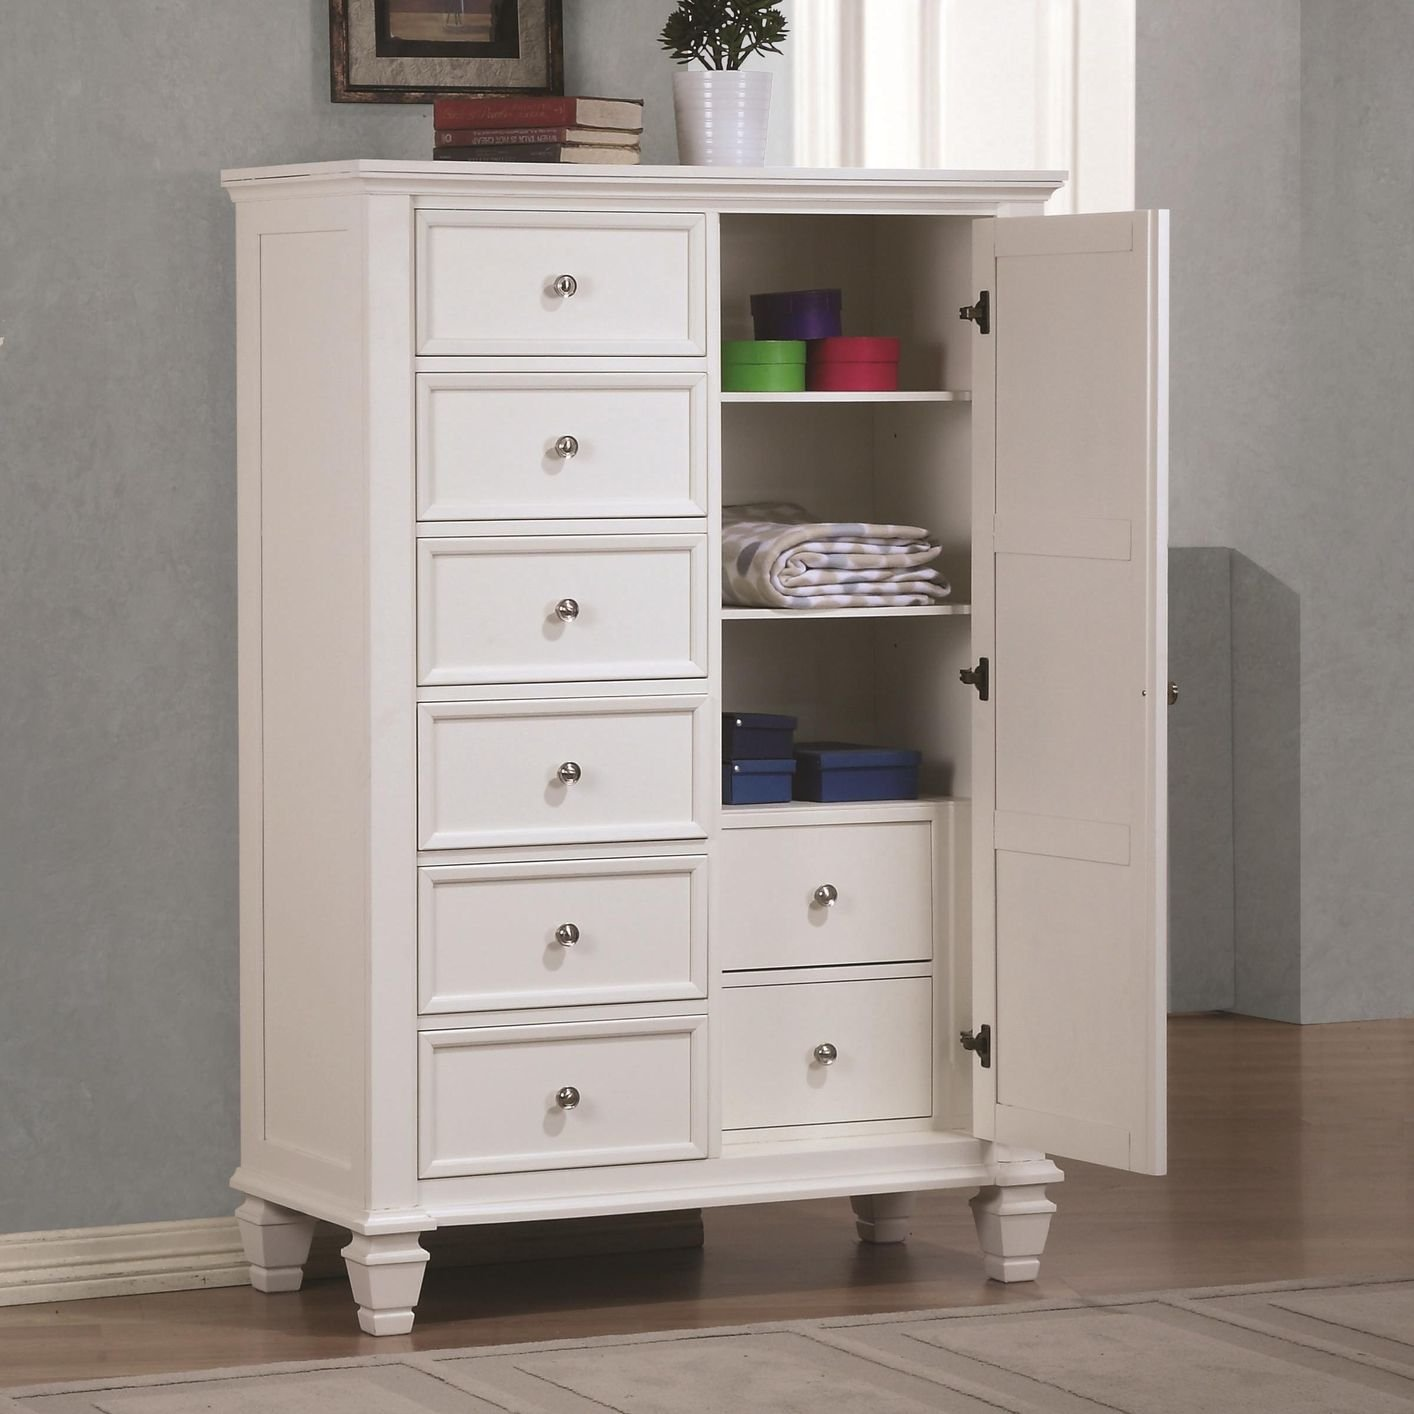 White Wood Chest of Drawers - Steal-A-Sofa Furniture Outlet Los Angeles CA